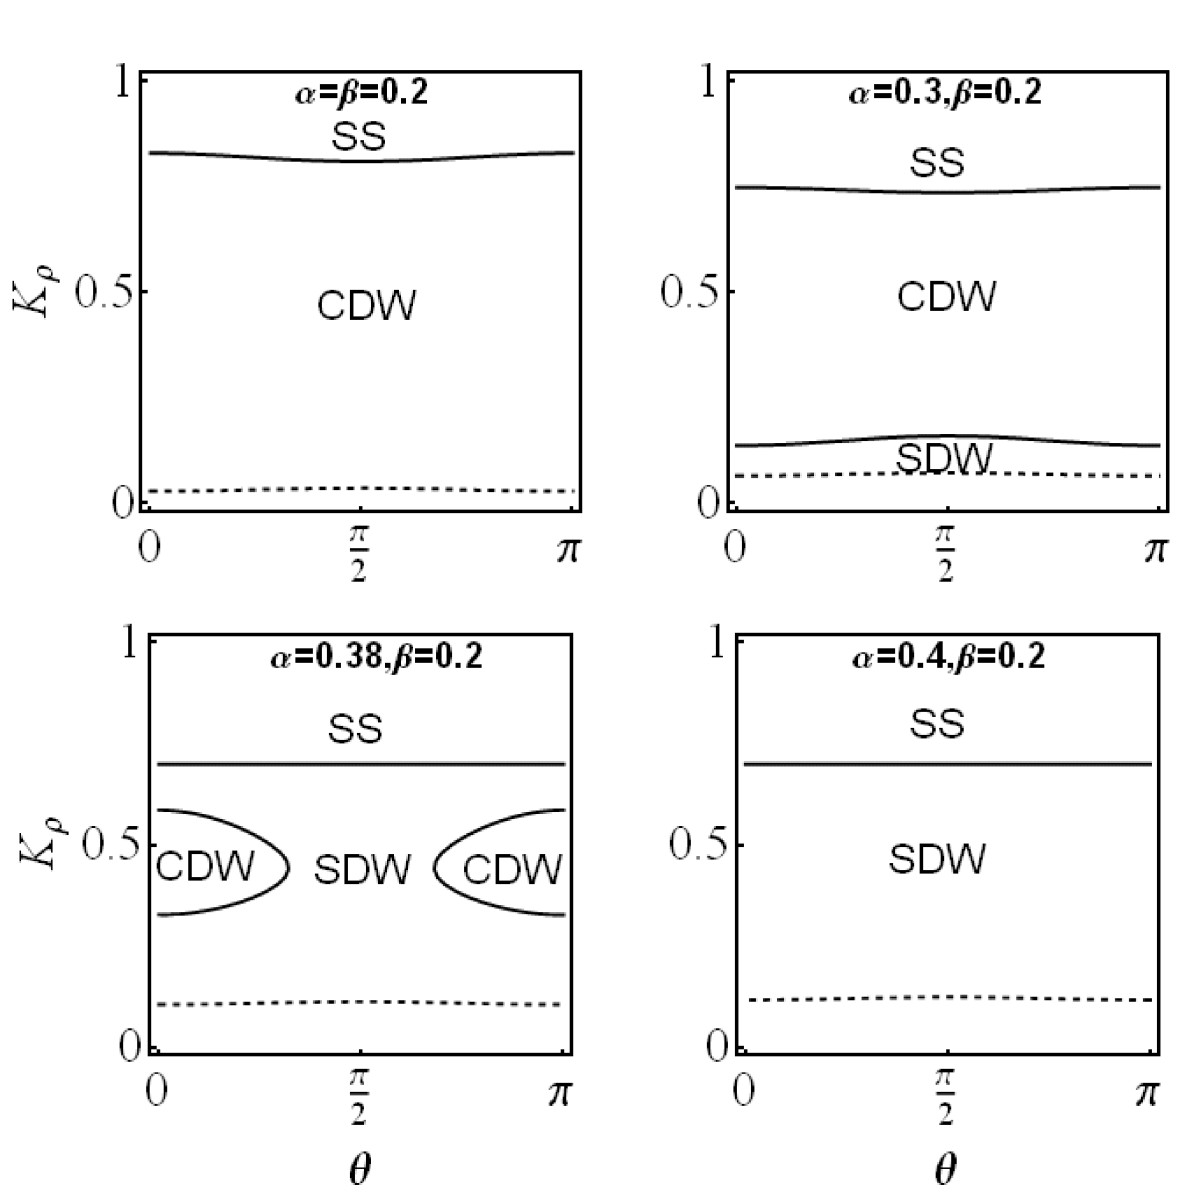 https://static-content.springer.com/image/art%3A10.1186%2F1556-276X-6-213/MediaObjects/11671_2010_Article_147_Fig3_HTML.jpg